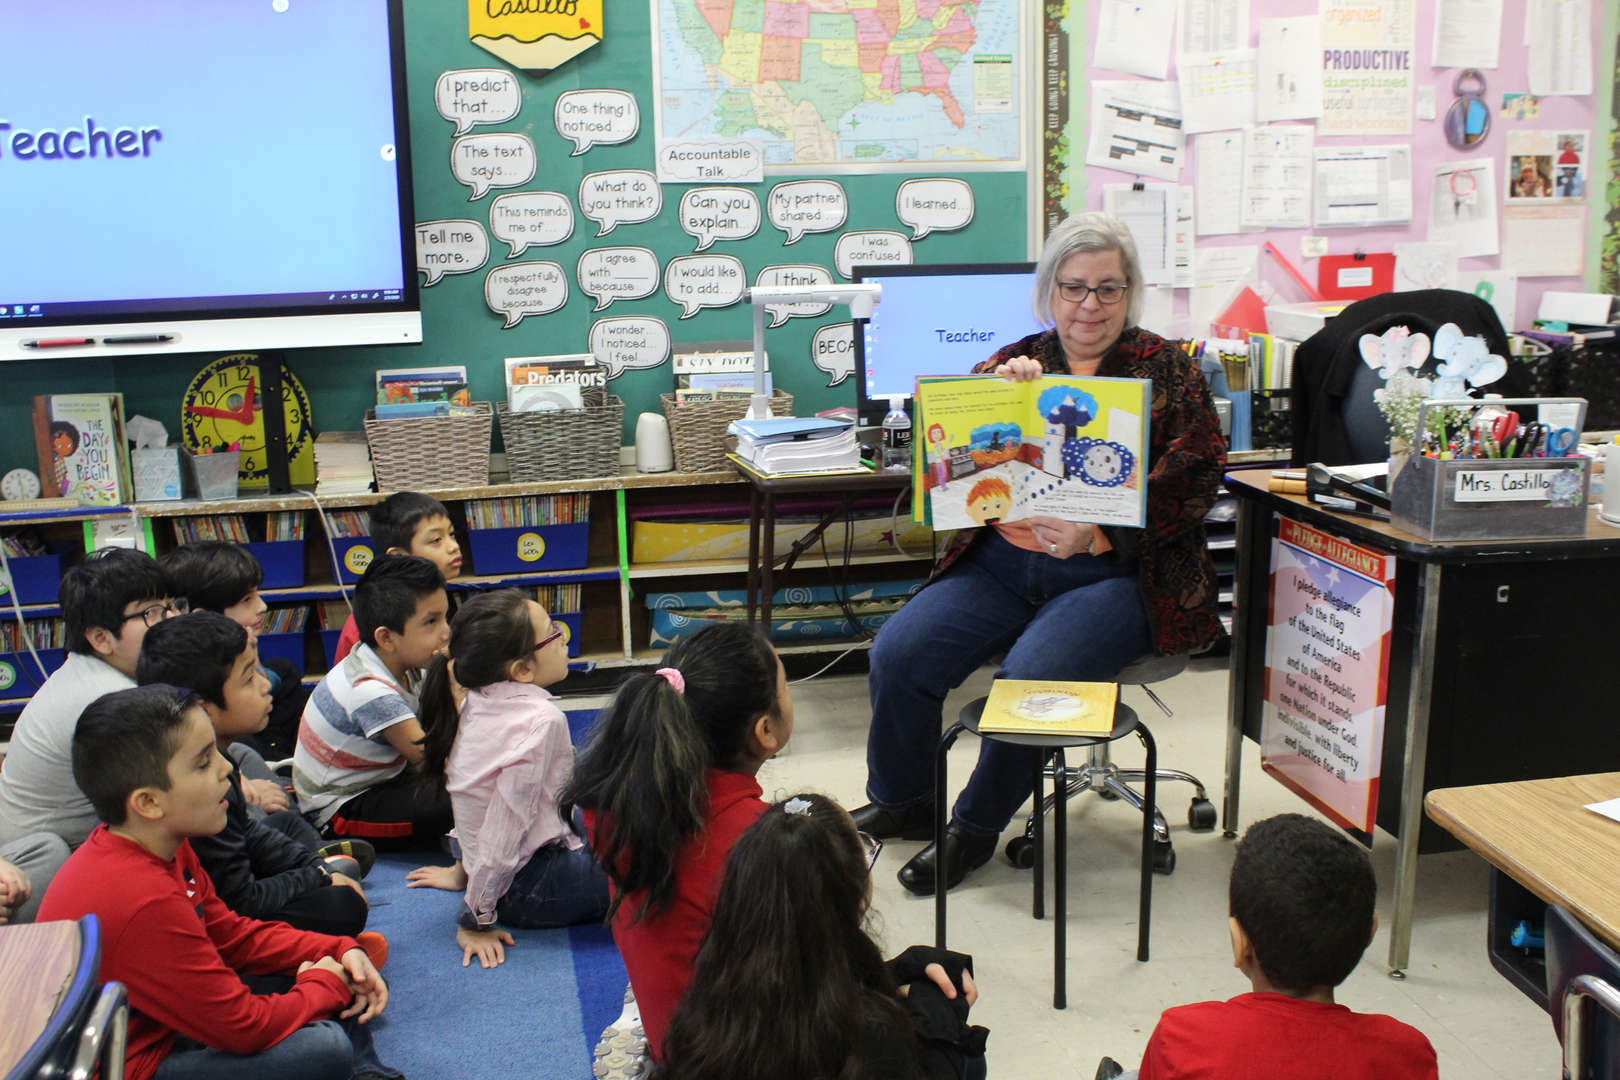 Woman shows pictures in a book to children